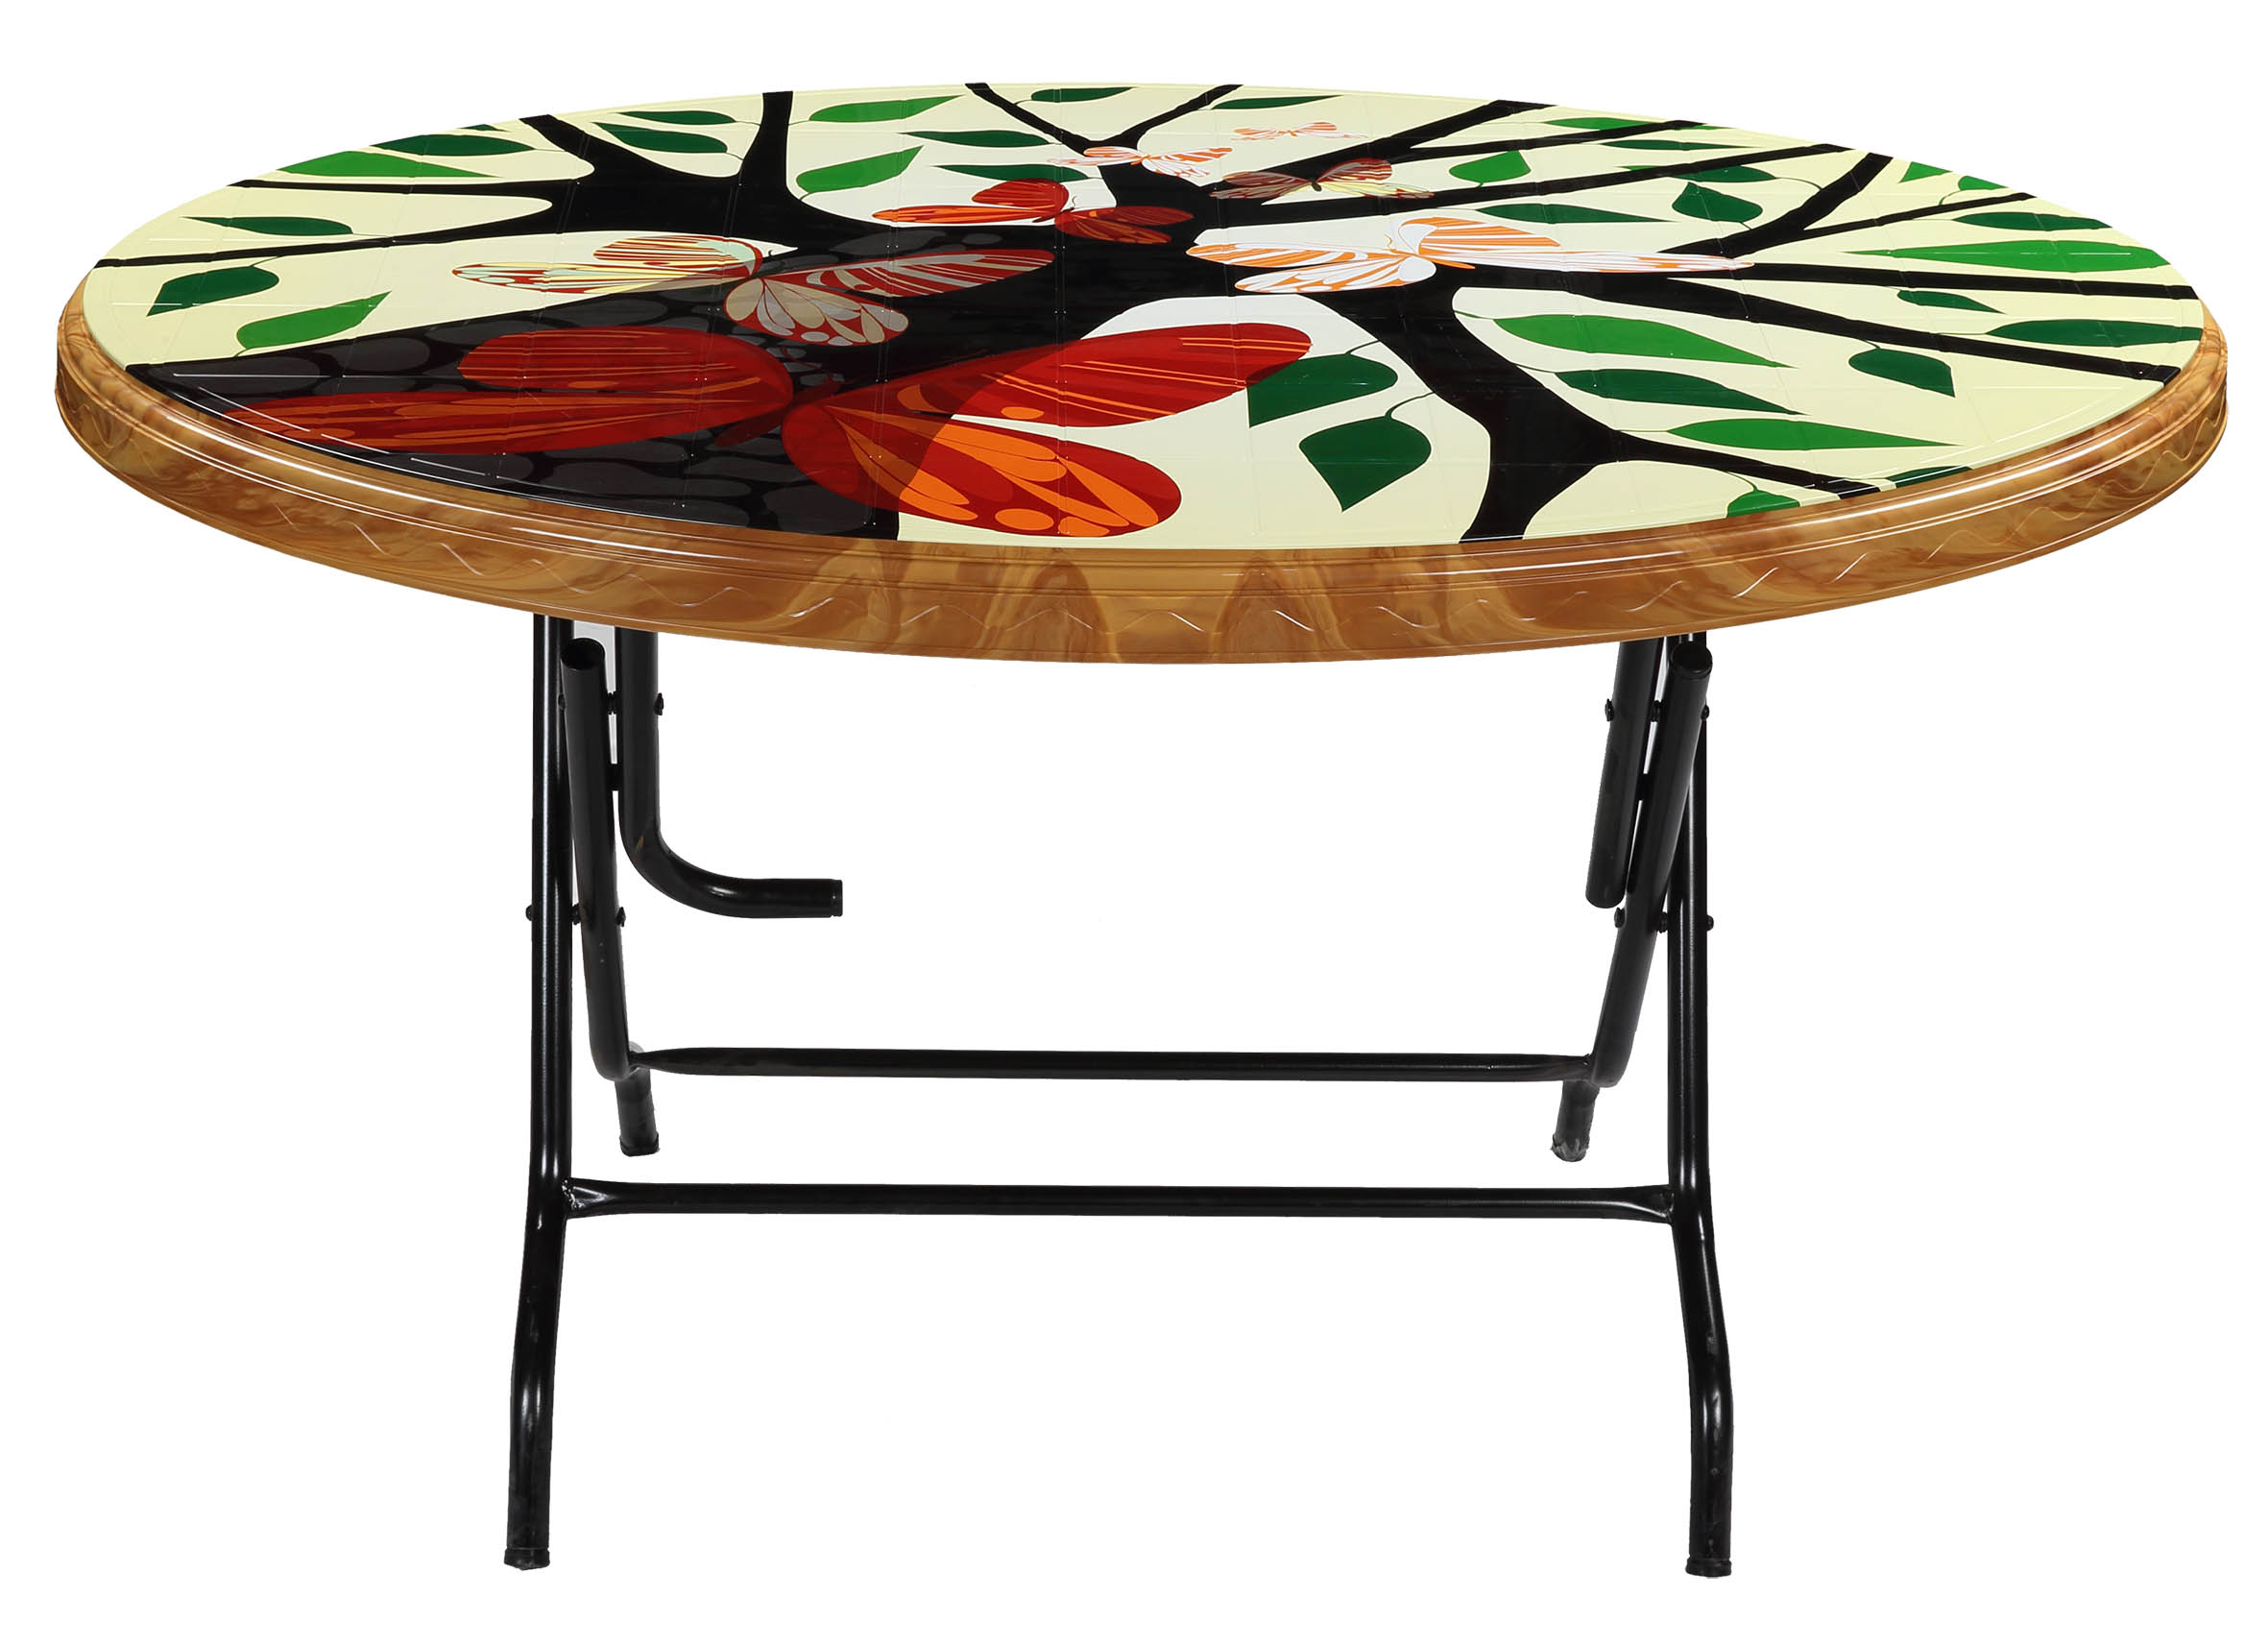 Dining Table 4 Seat Oval S/L Print Love Tree-SW